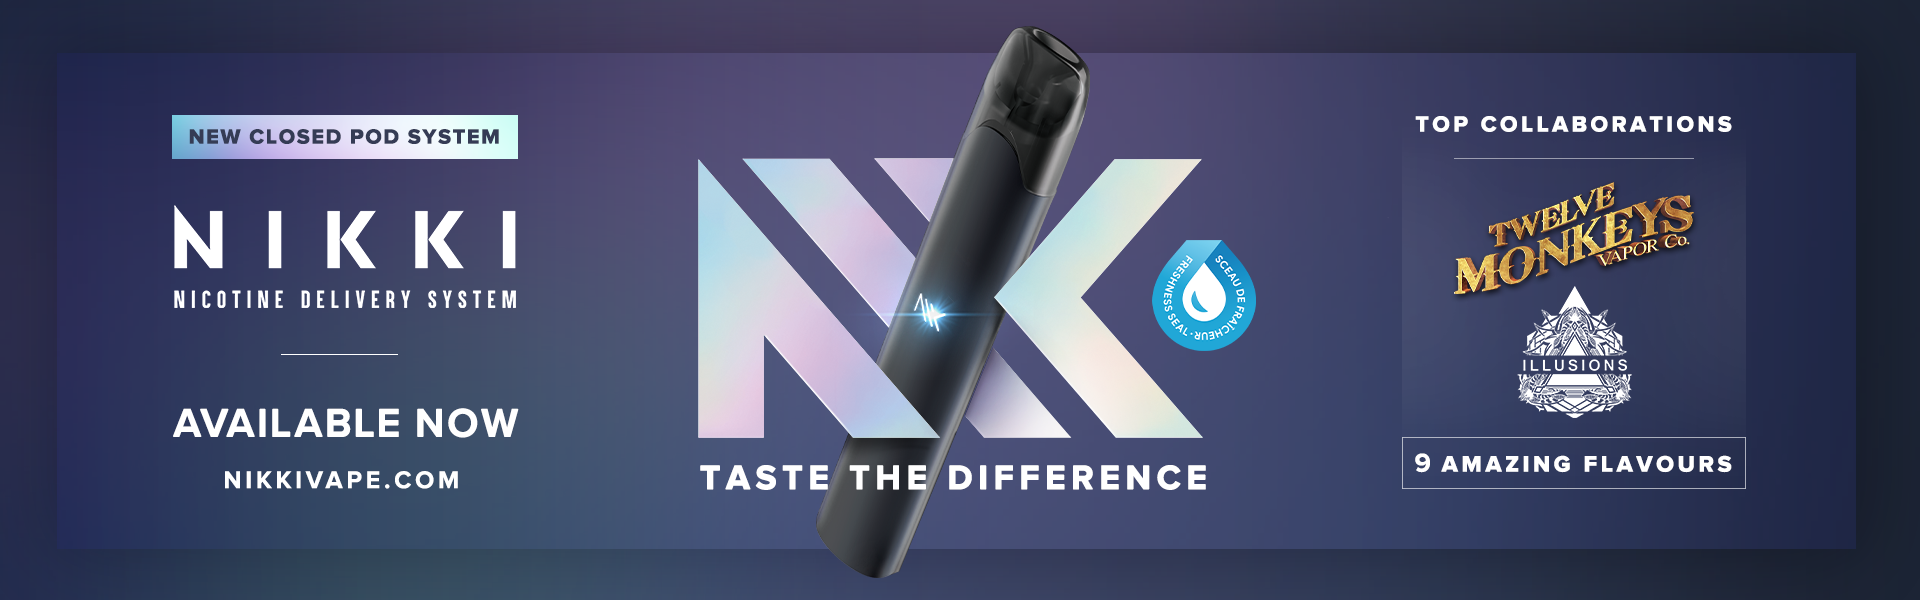 The New Nikki Pre-Filled Pod System for Twelve Monkeys and Illusions eJuice